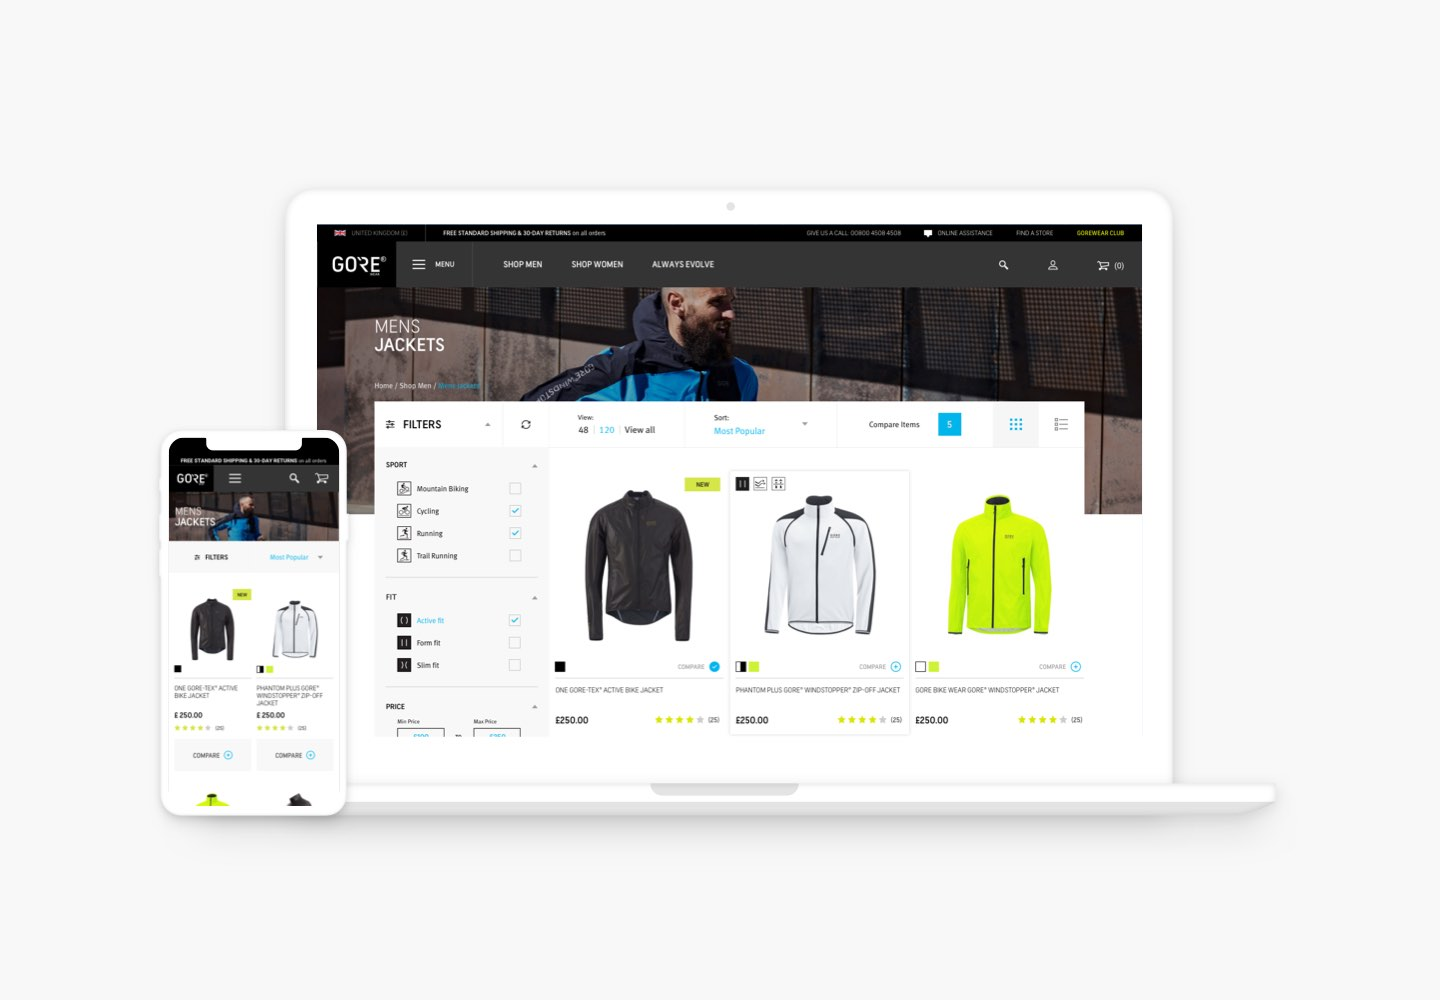 Gorewear Product Listing Page